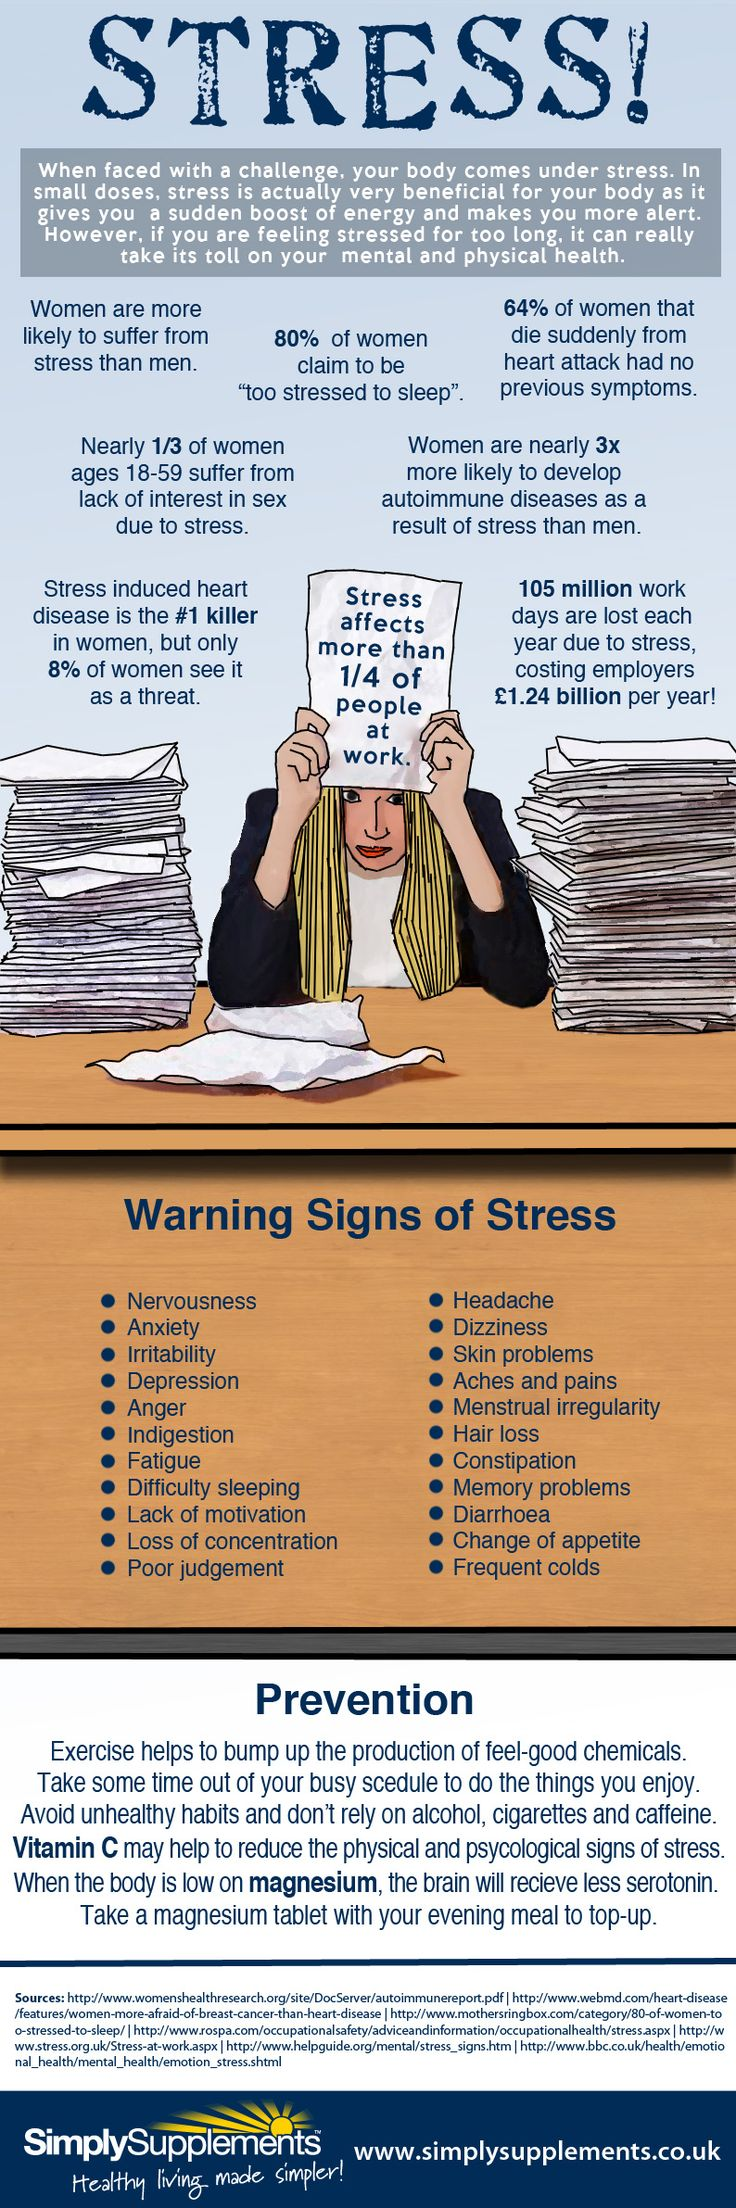 Do you know the facts about stress, and what you can do to help cope and relieve symptoms?